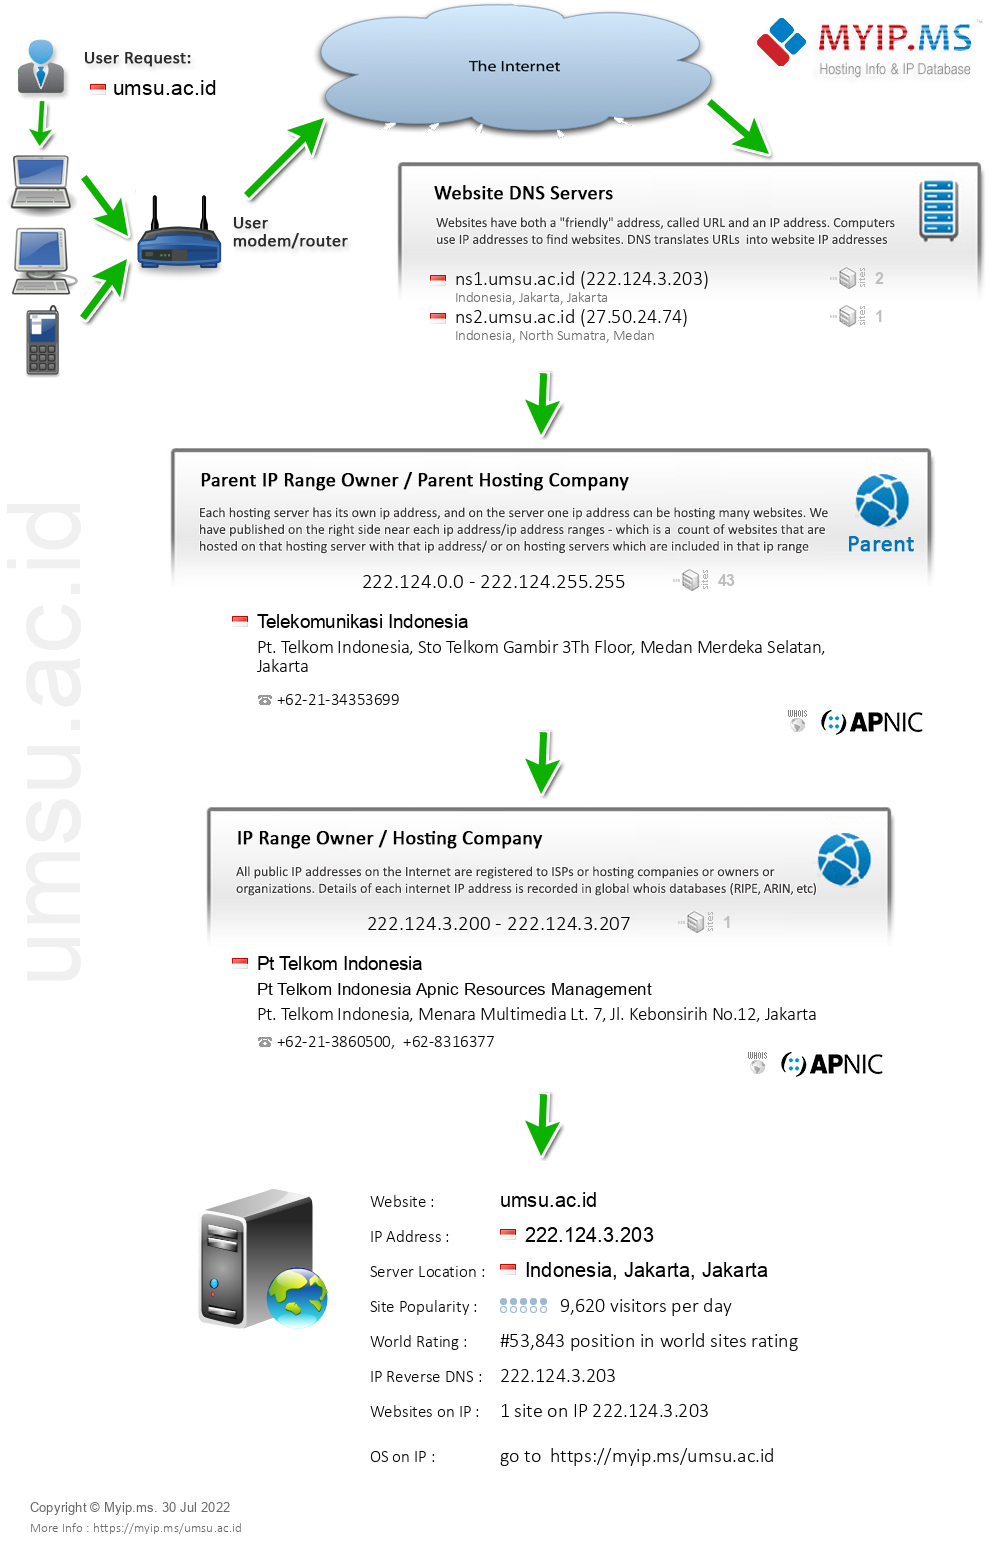 Umsu.ac.id - Website Hosting Visual IP Diagram